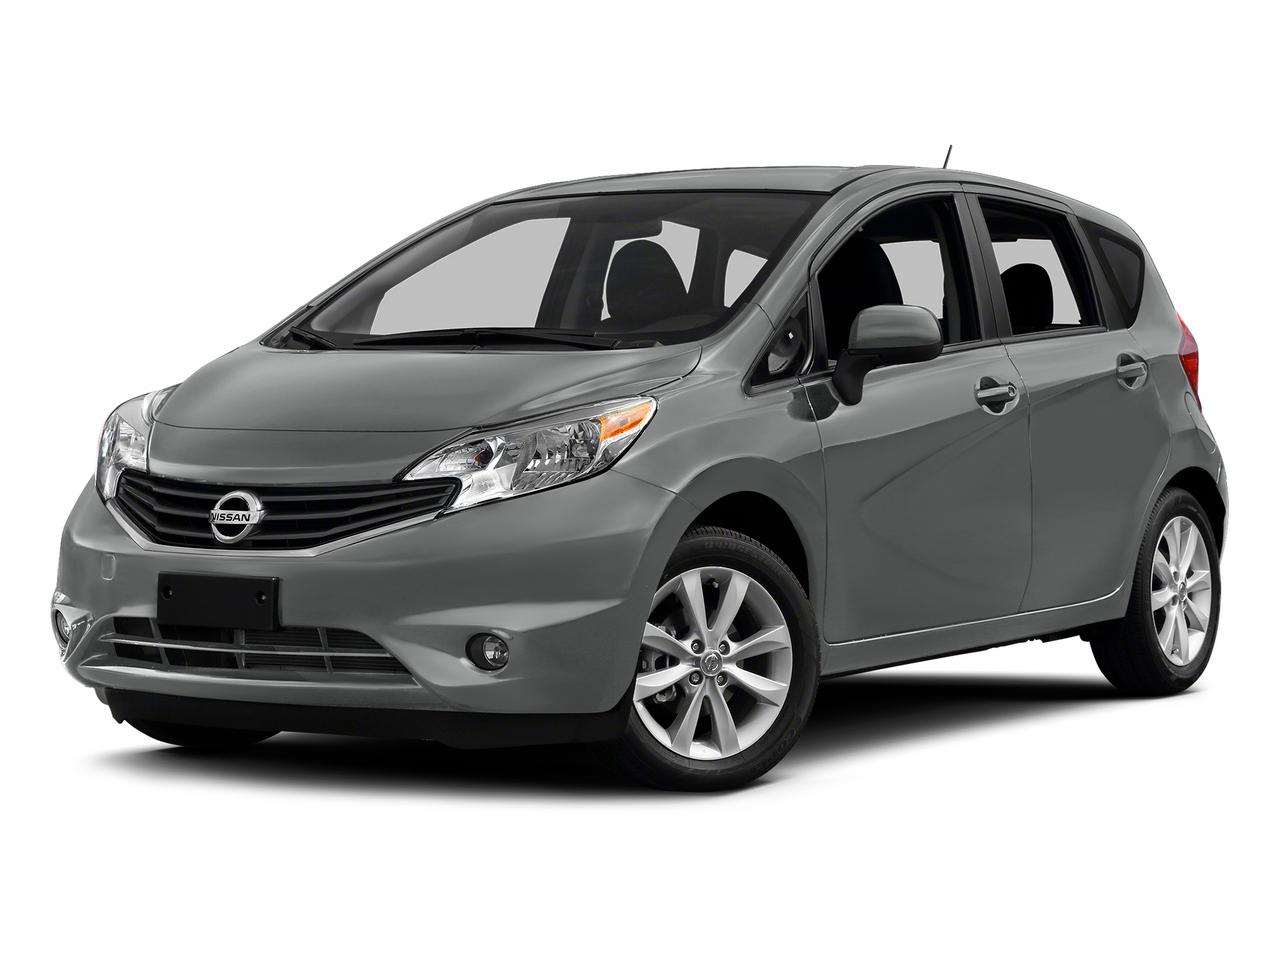 2015 Nissan Versa Note Vehicle Photo in Boyertown, PA 19512